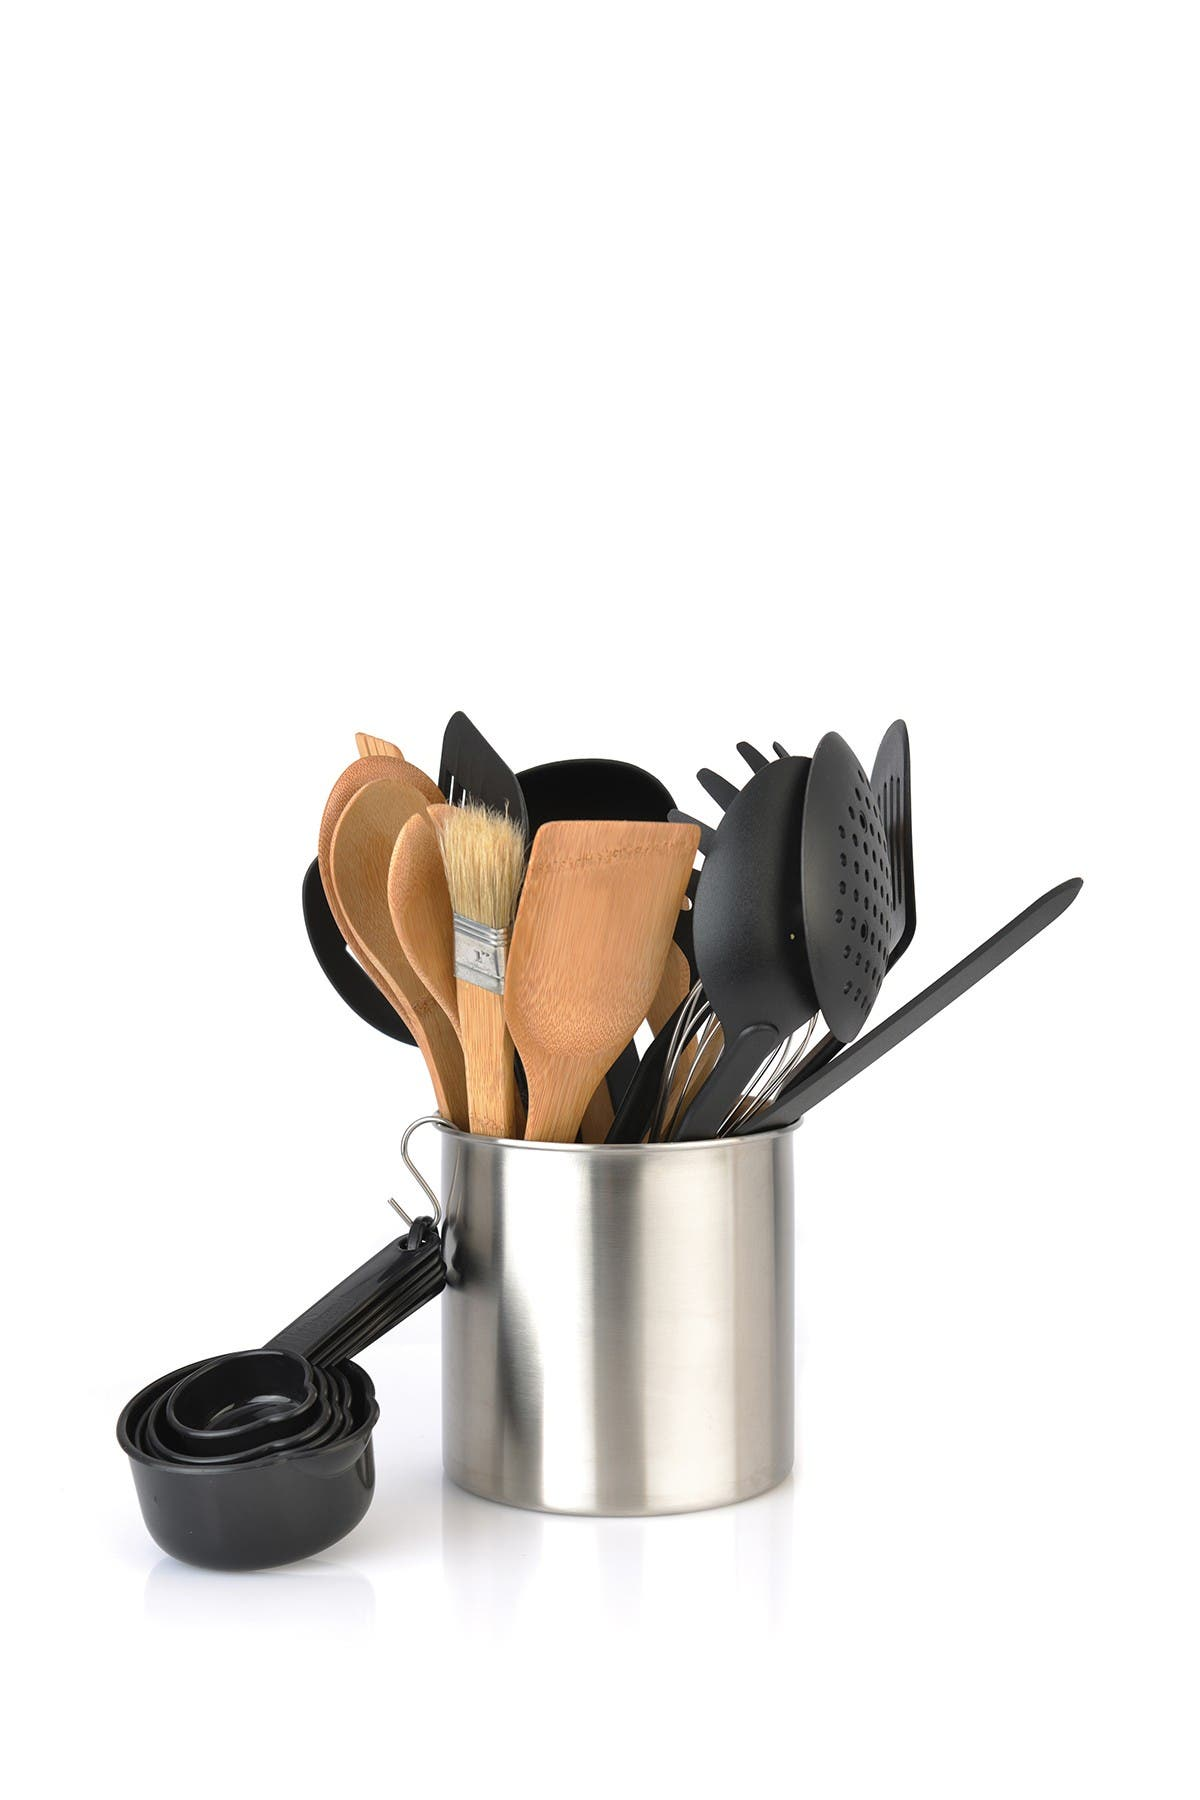 Image of BergHOFF Silver Tub of Tools 23-Piece Set